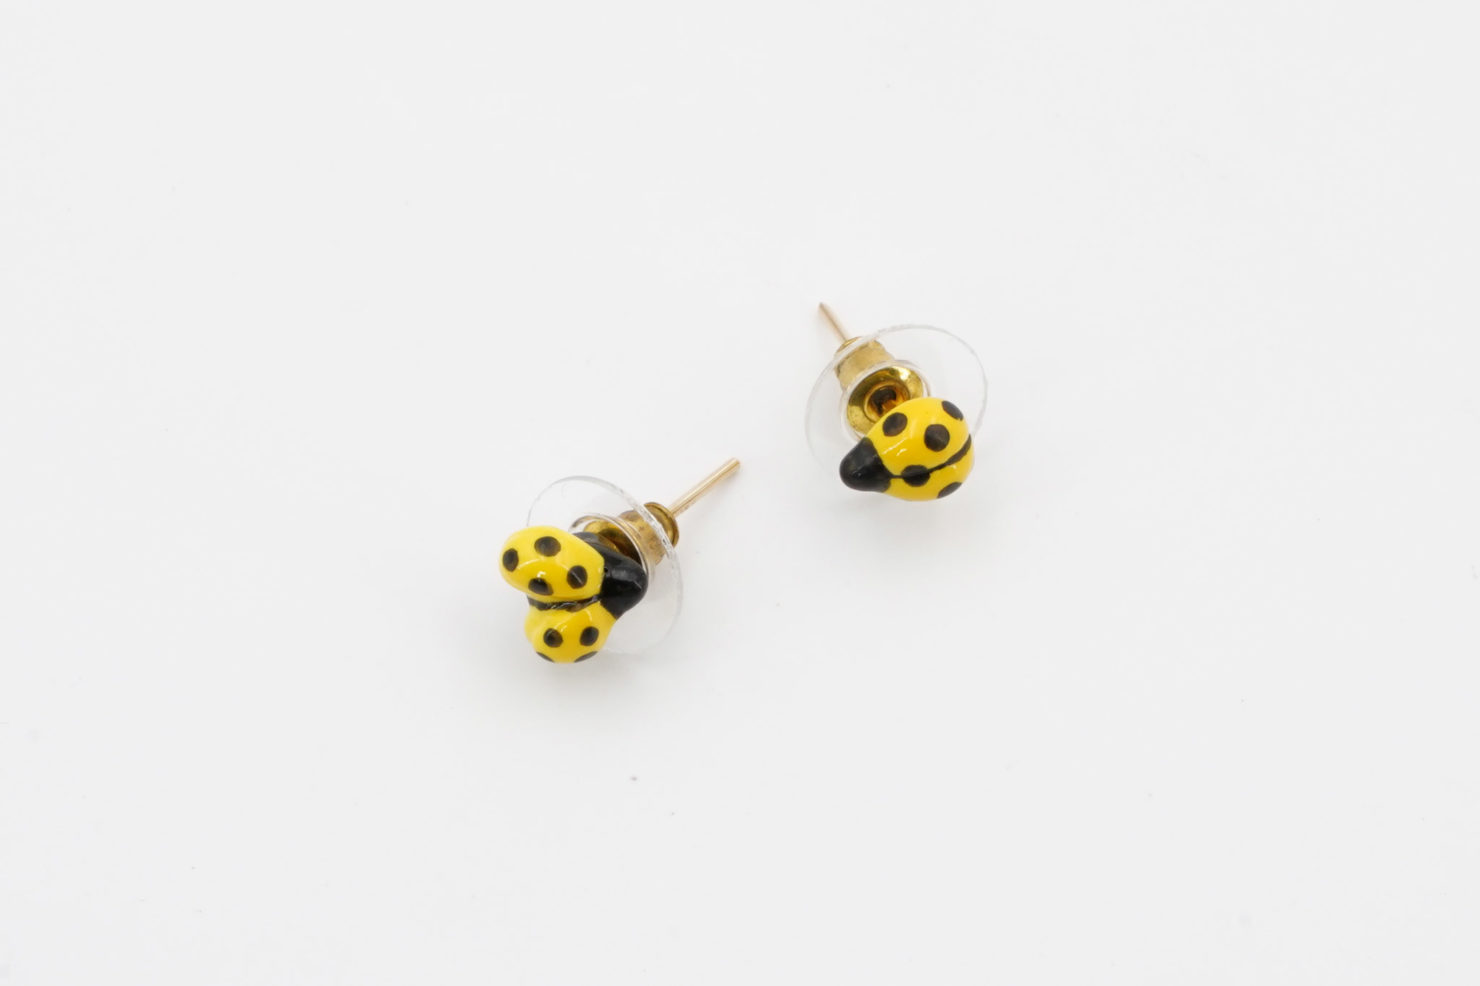 MINI YELLOW LADYBUG EARRINGS - NACH